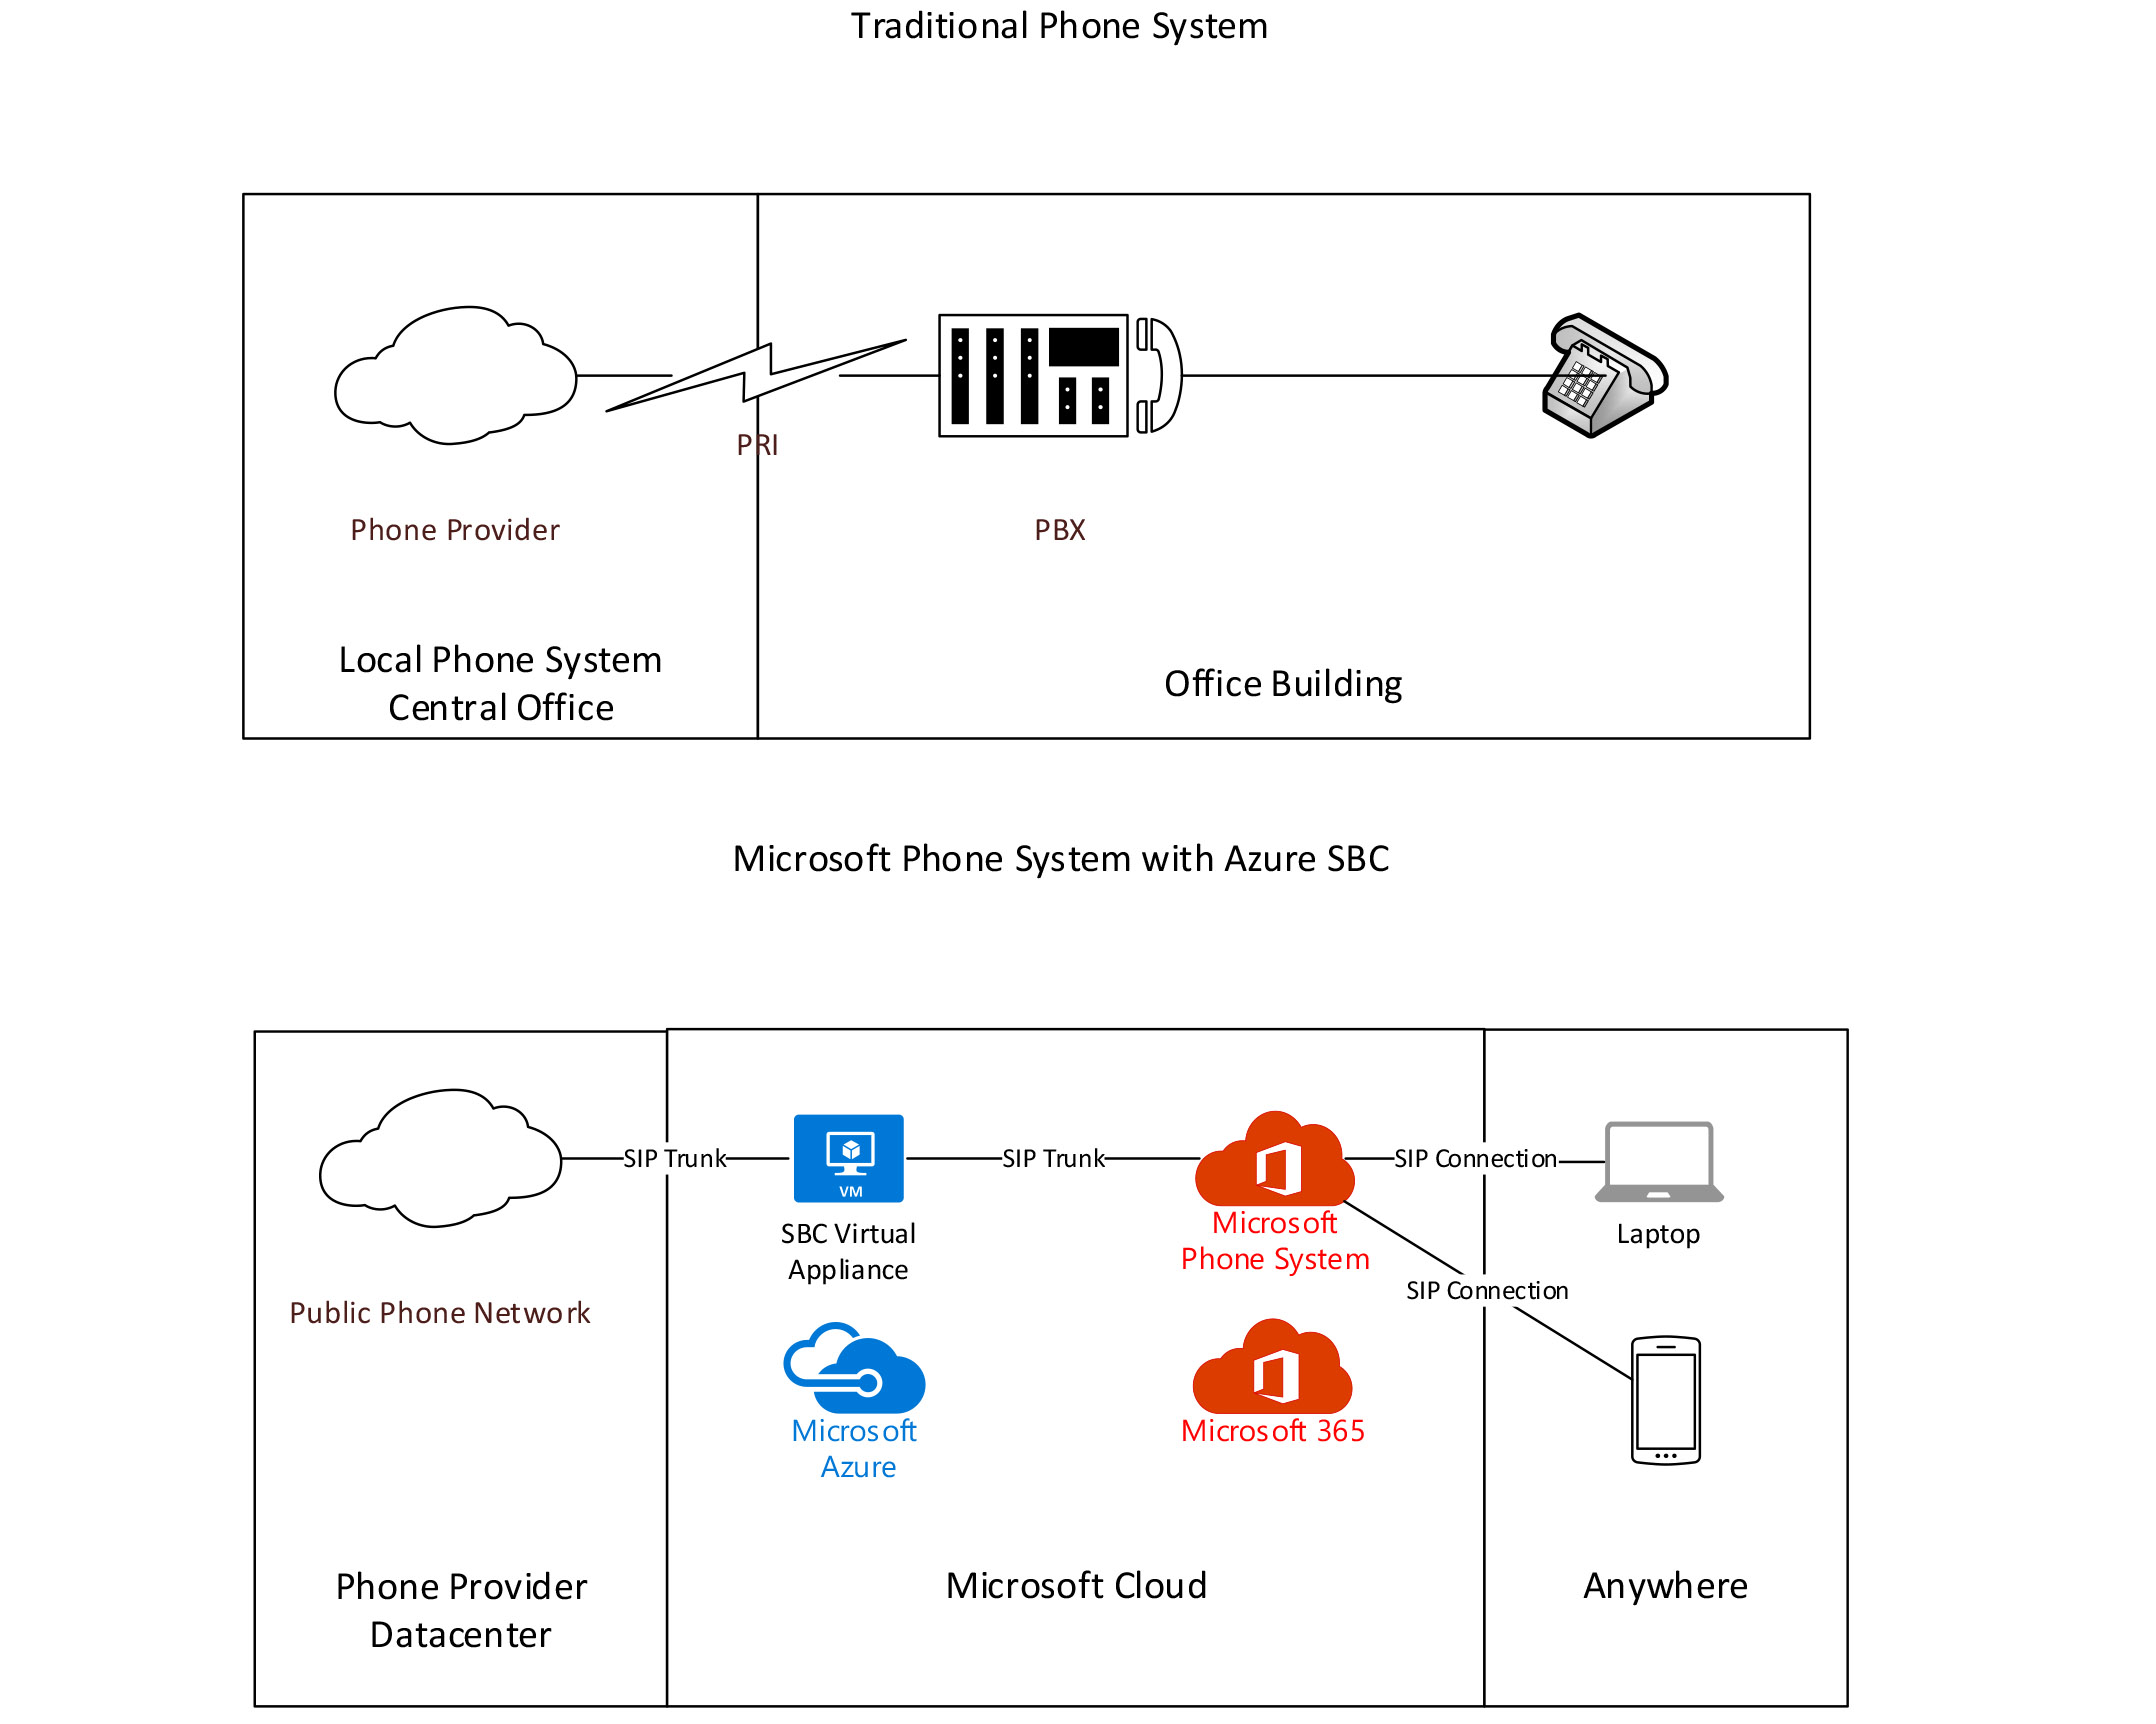 how the Microsoft Phone System with Azure SBC